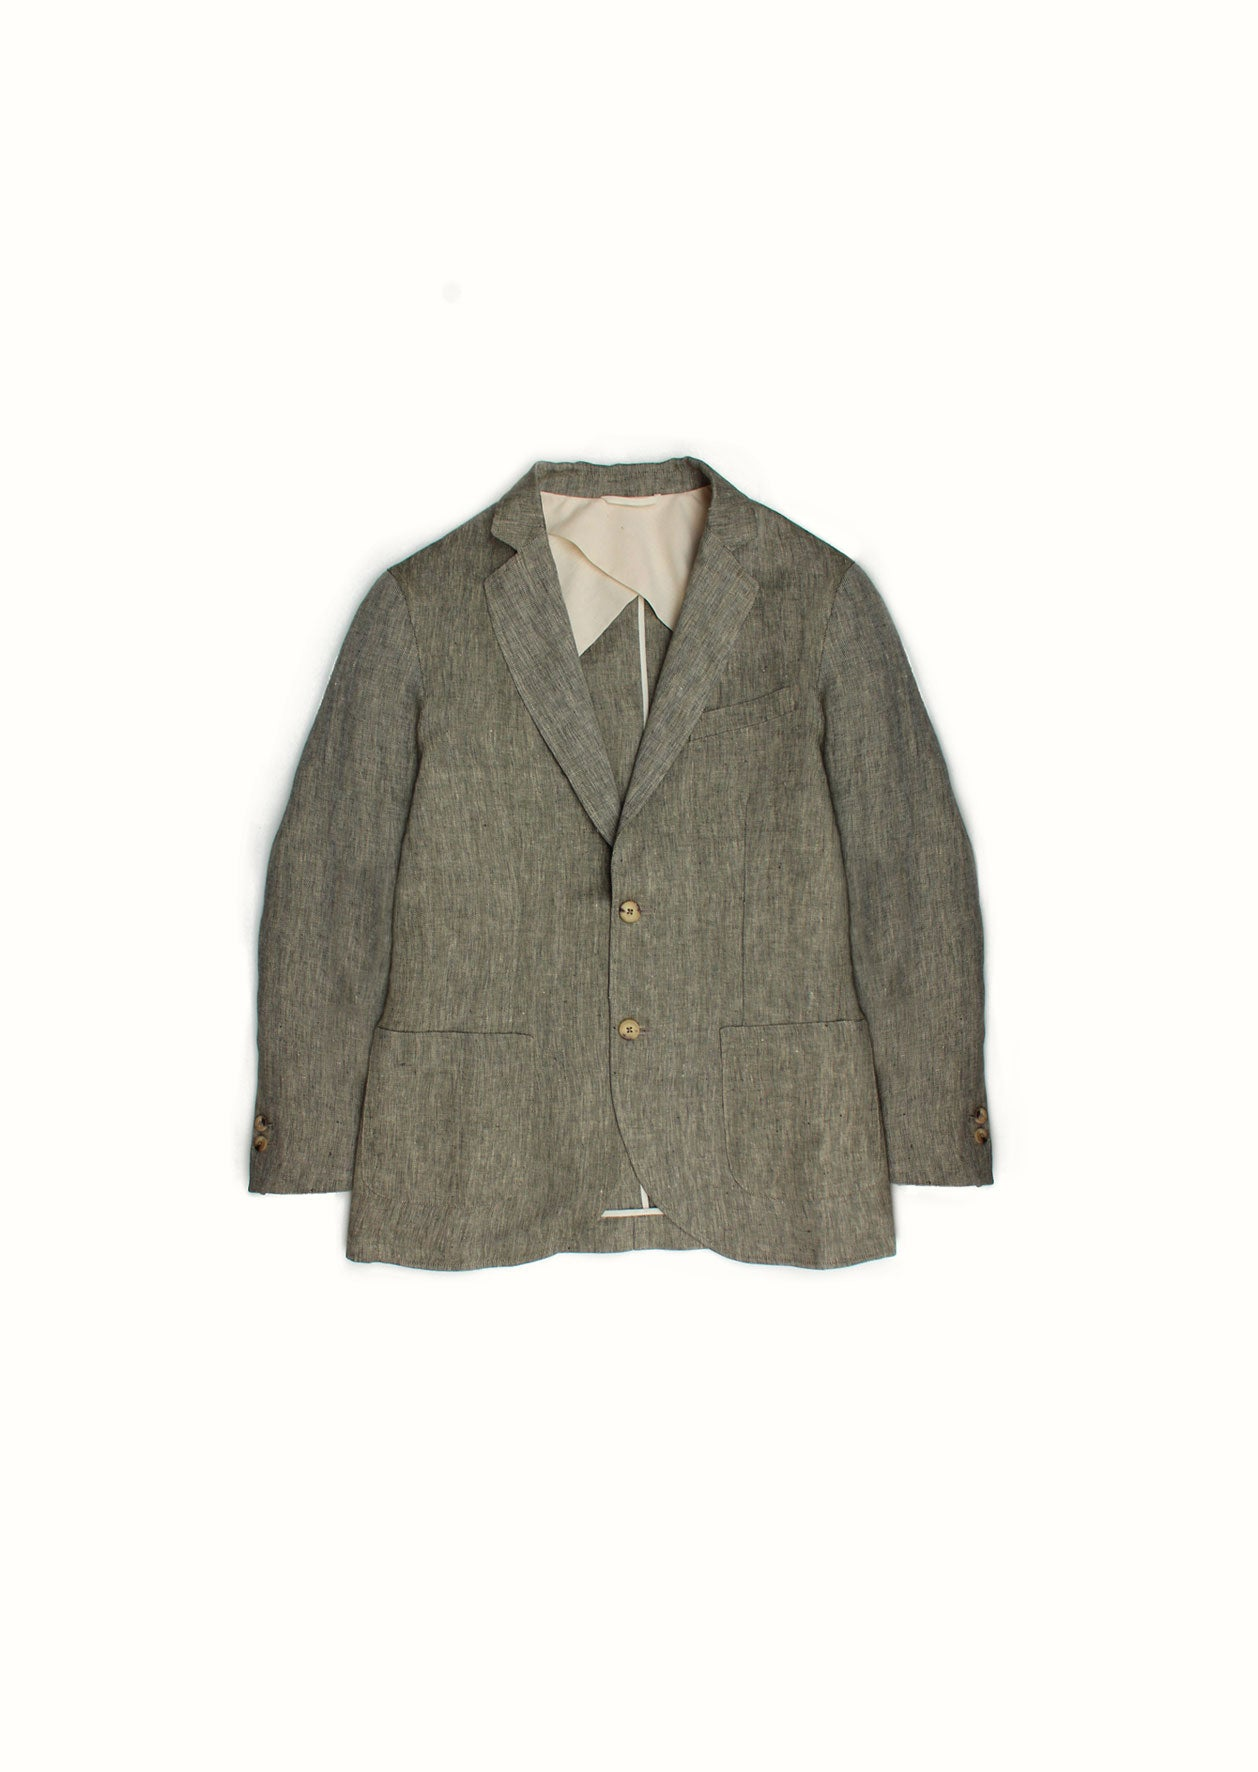 Sports jacket - Linen herringbone - Khaki & ecru - De Bonne Facture